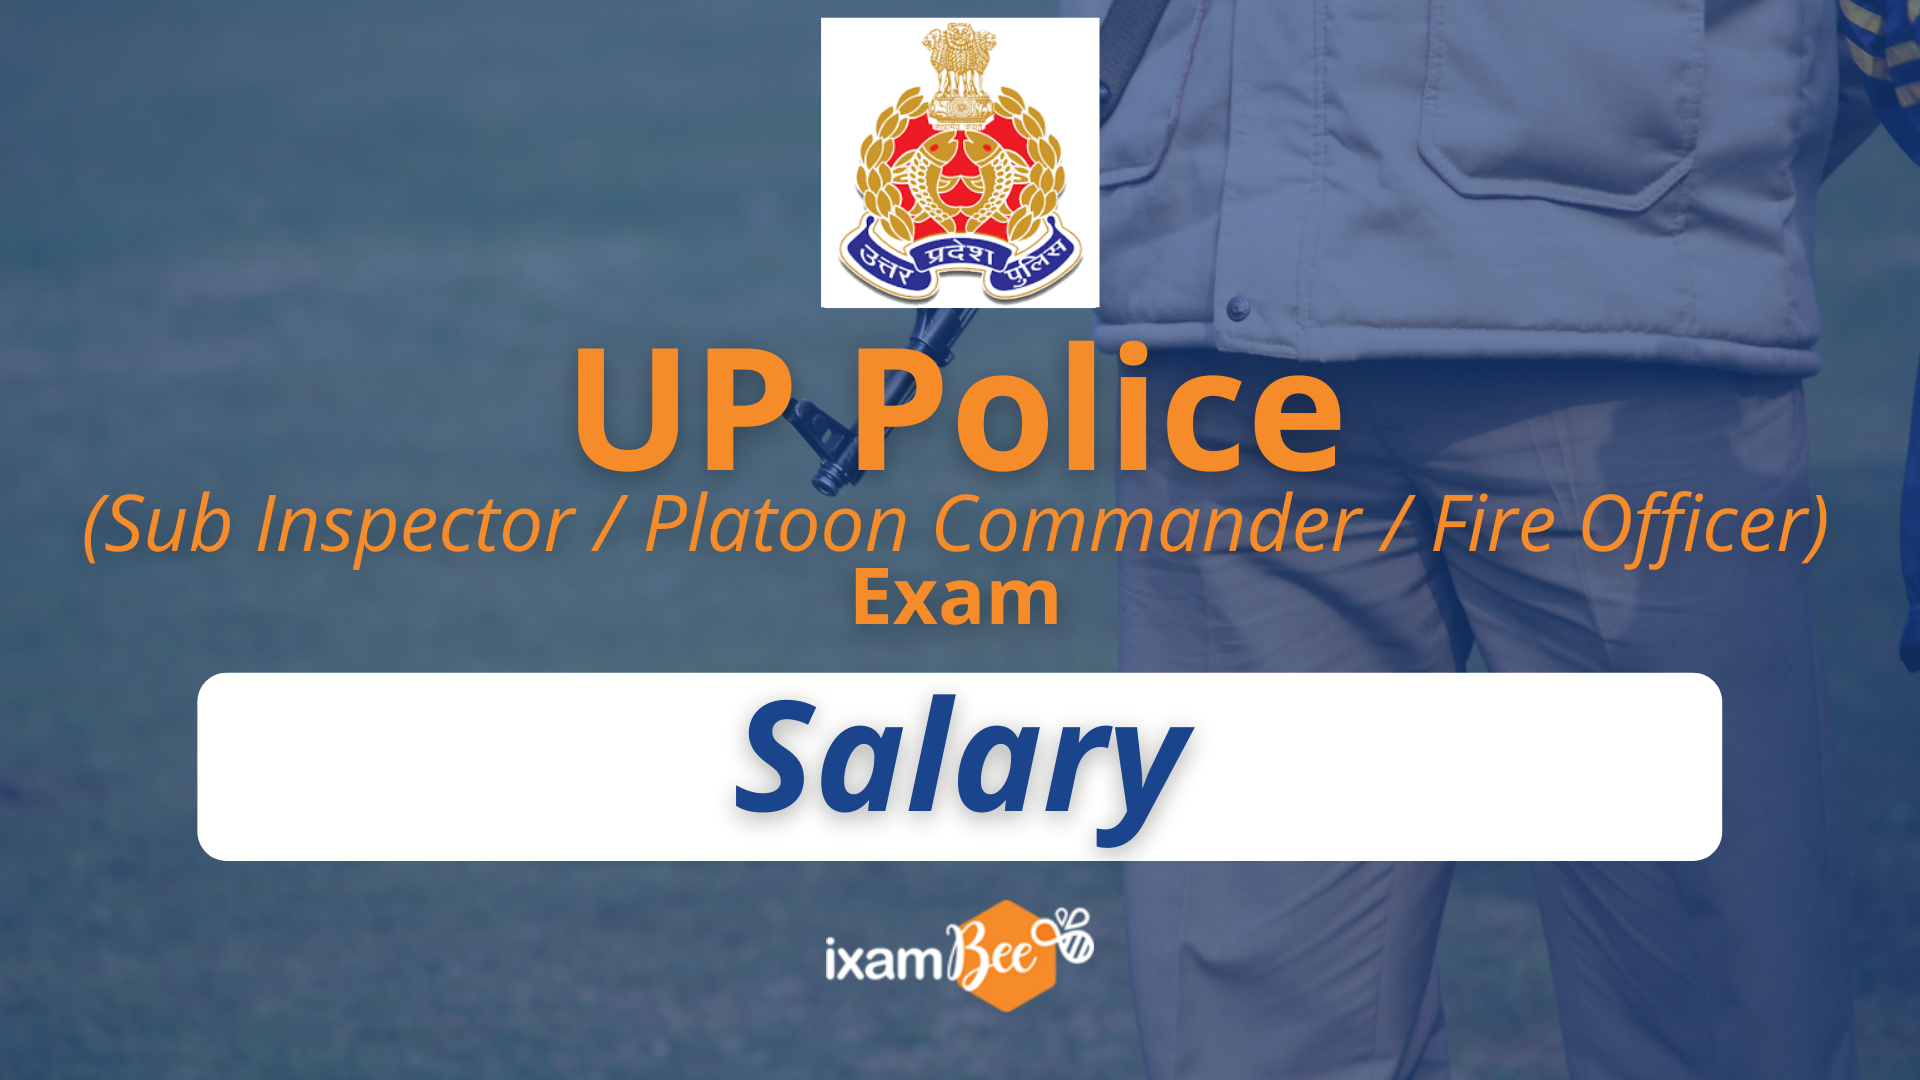 UP Police (Sub Inspector, Platoon Commander, and Fire Officer) Salary